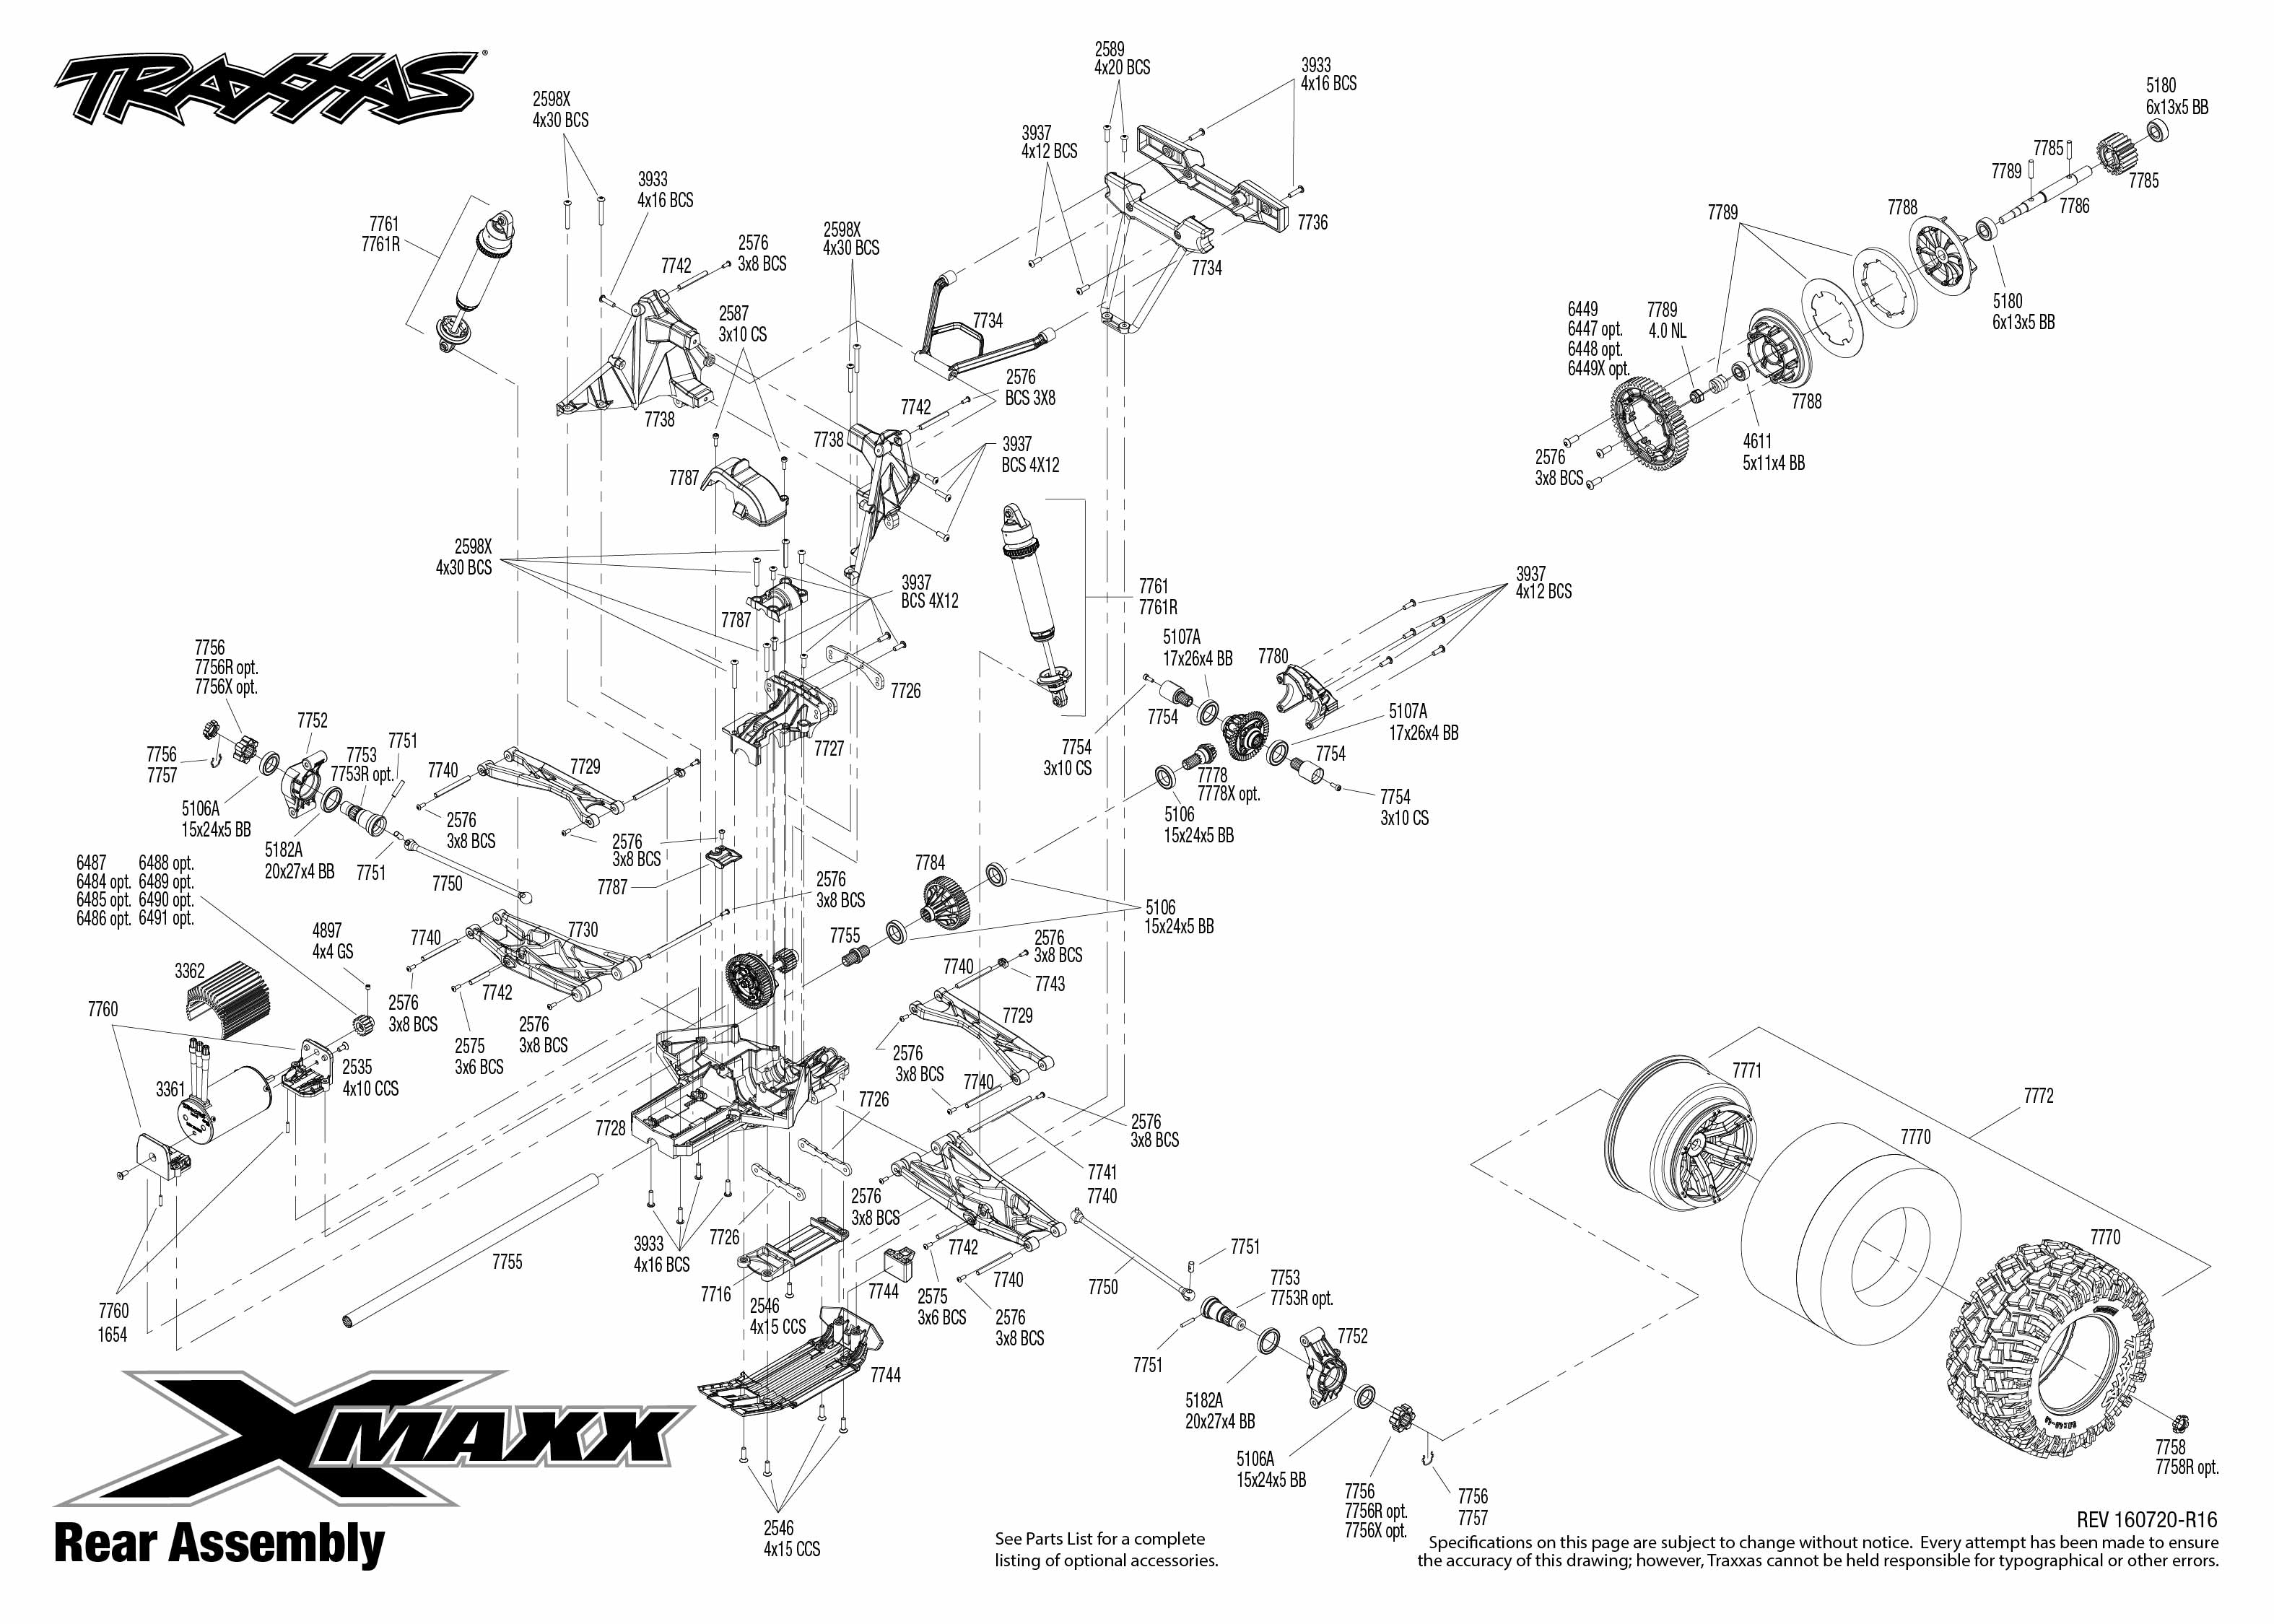 X Maxx 4 Rear Assembly Exploded View